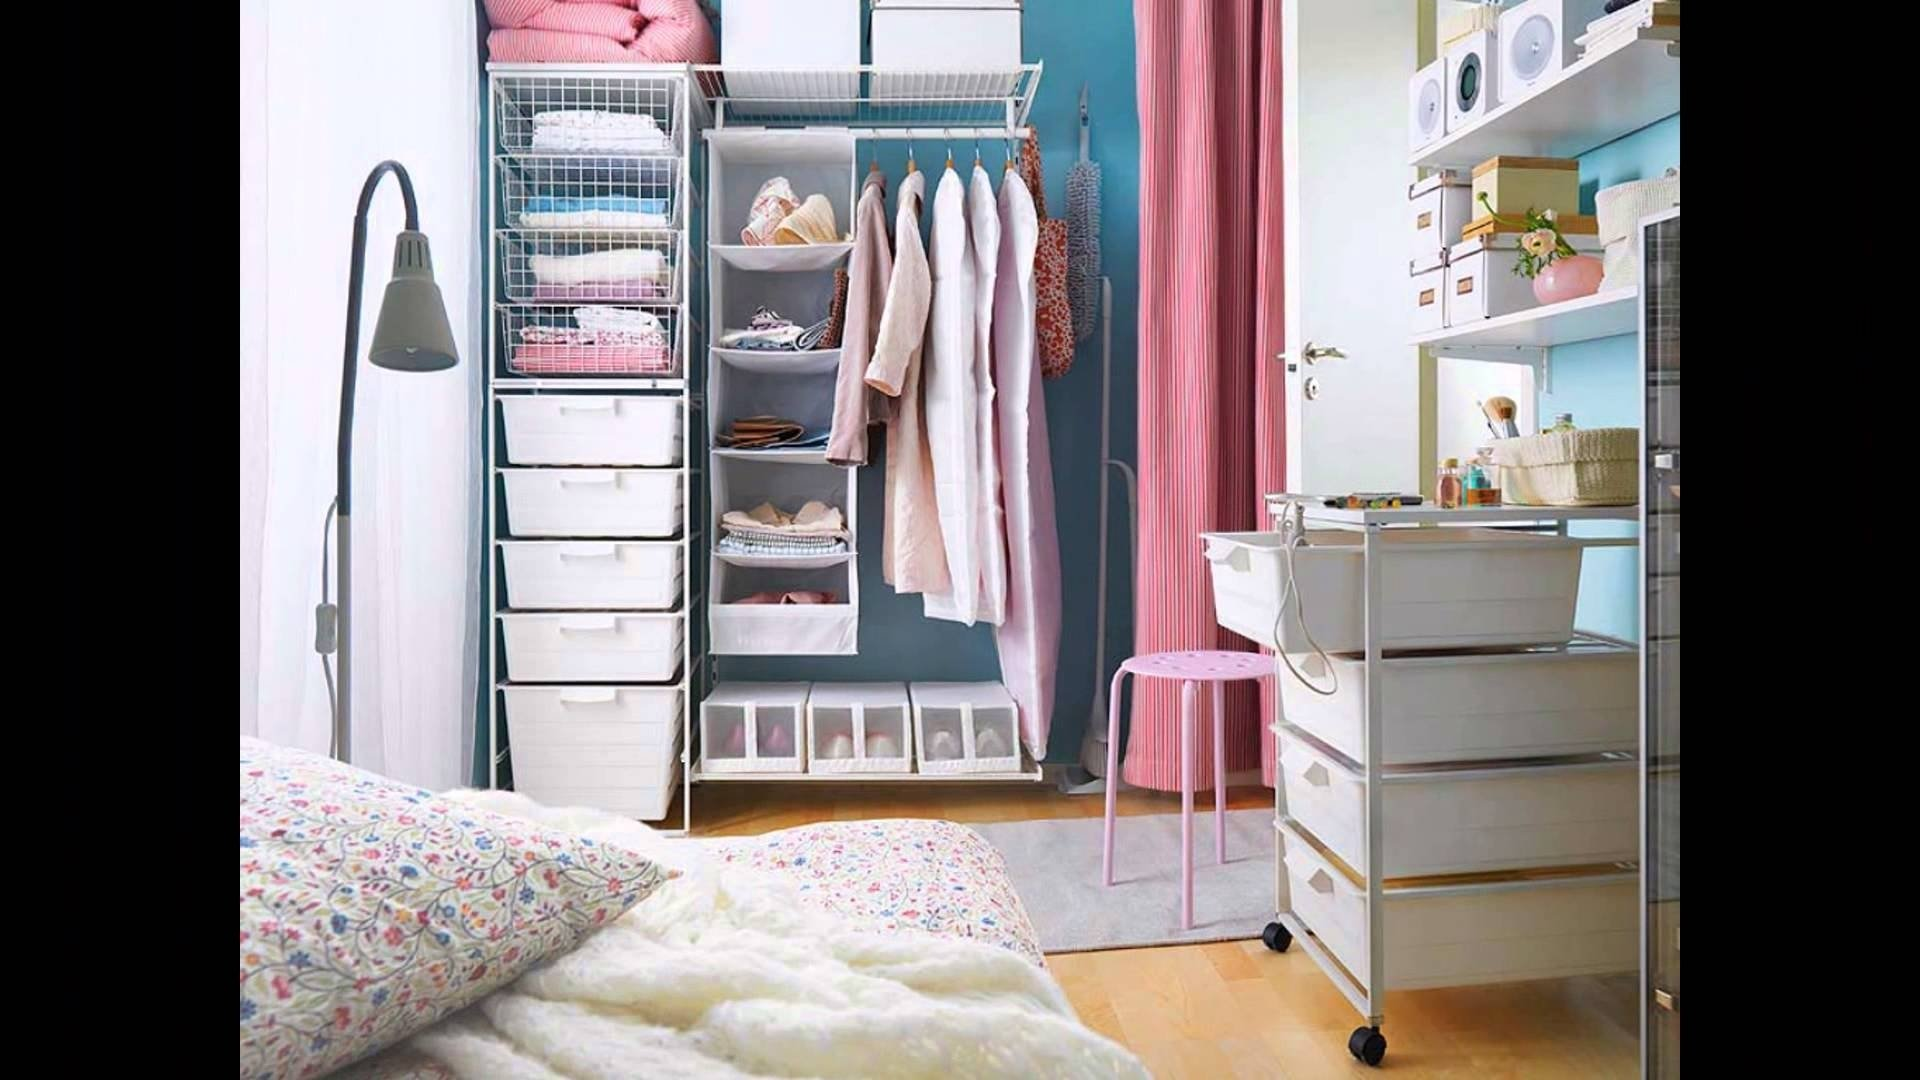 10 Elegant Organization Ideas For Small Bedrooms bedroom organization ideas small bedroom organization ideas youtube